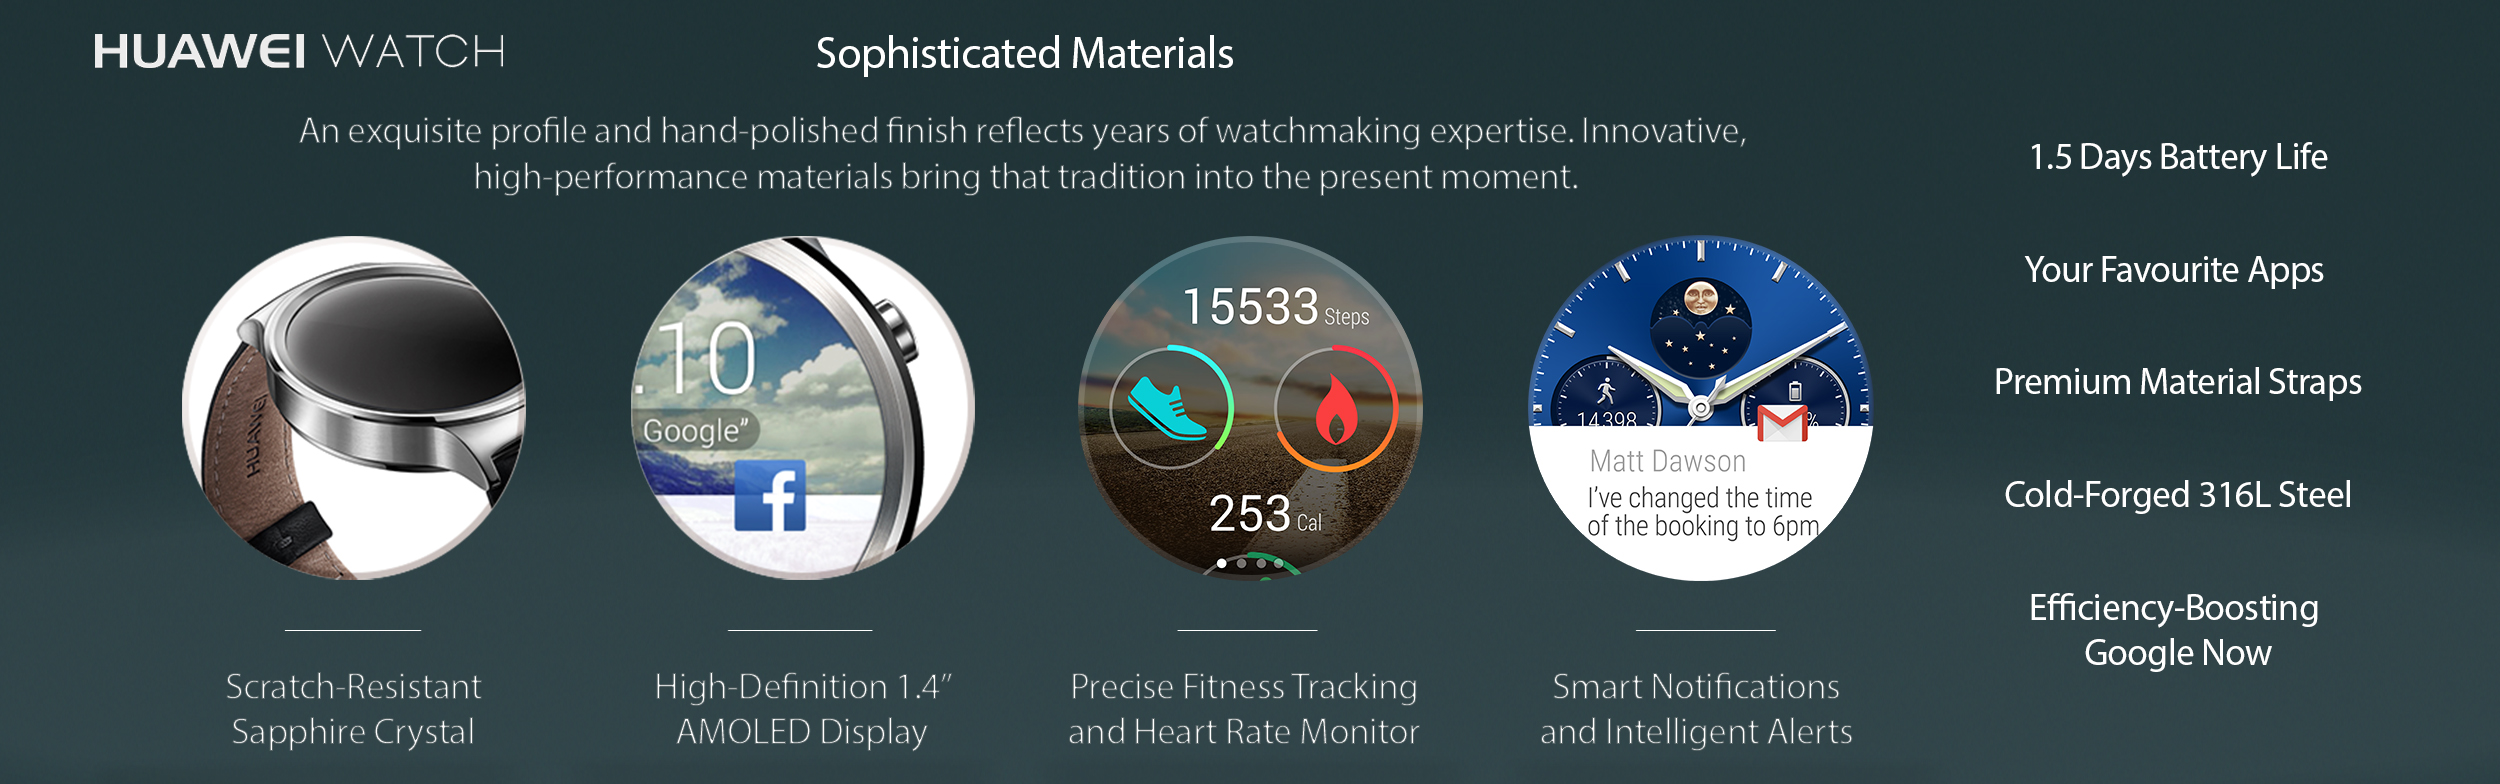 Huawei Smartwatches features